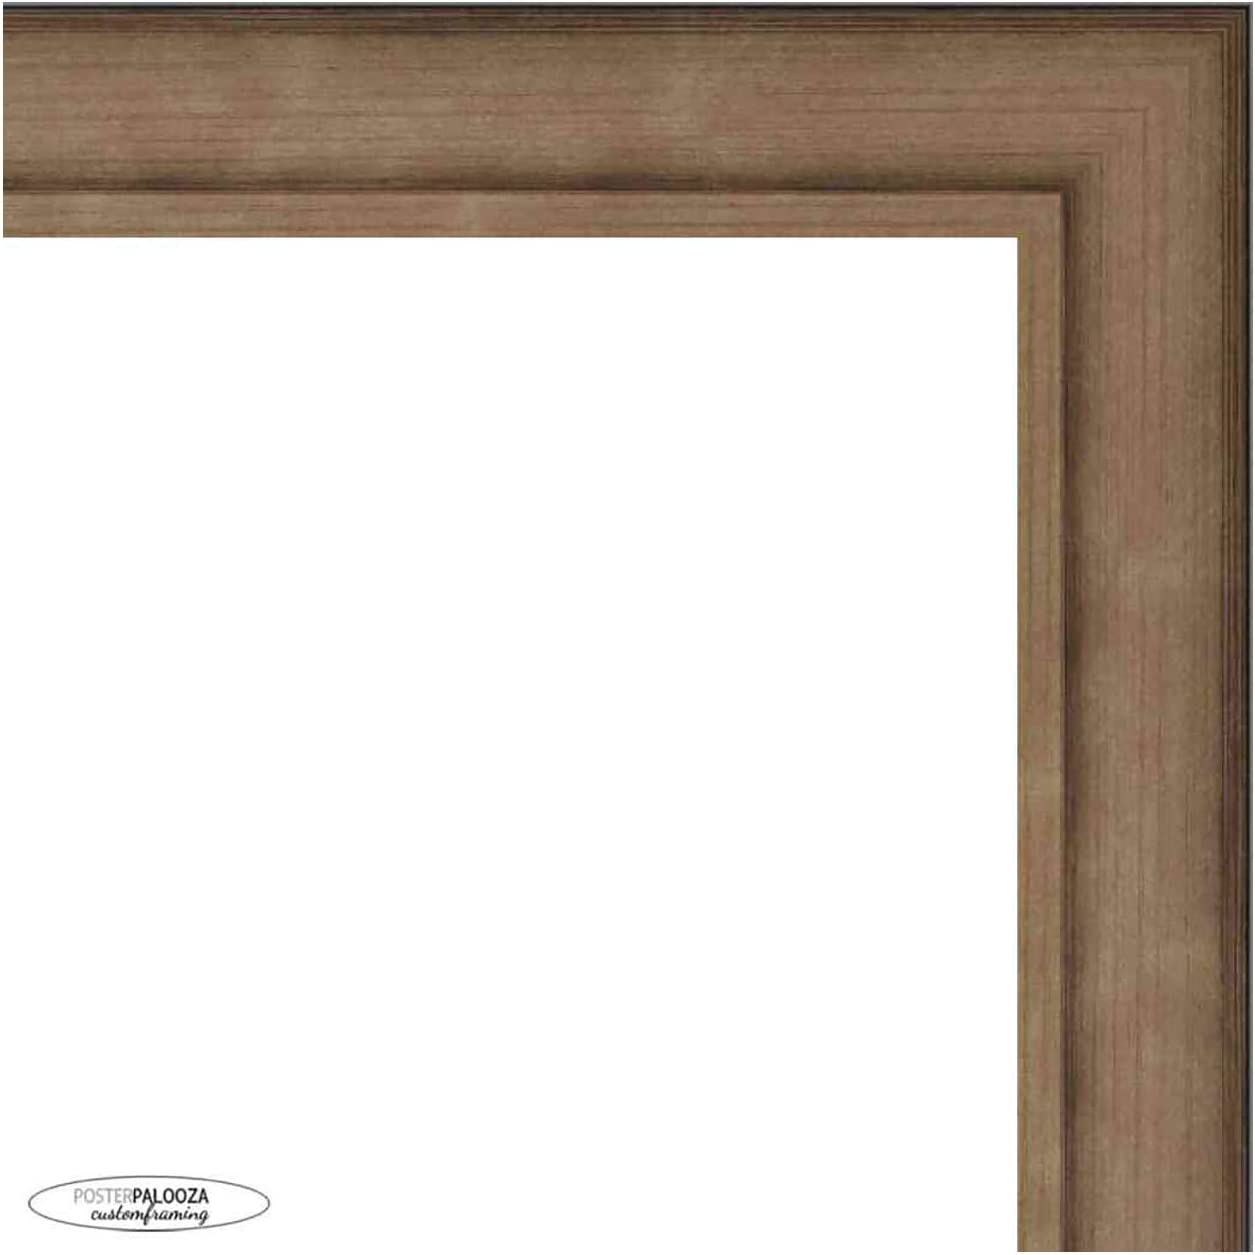 30x20 Traditional Pewter Complete Wood with Picture Acr Frame Limited time for free shipping Tampa Mall UV